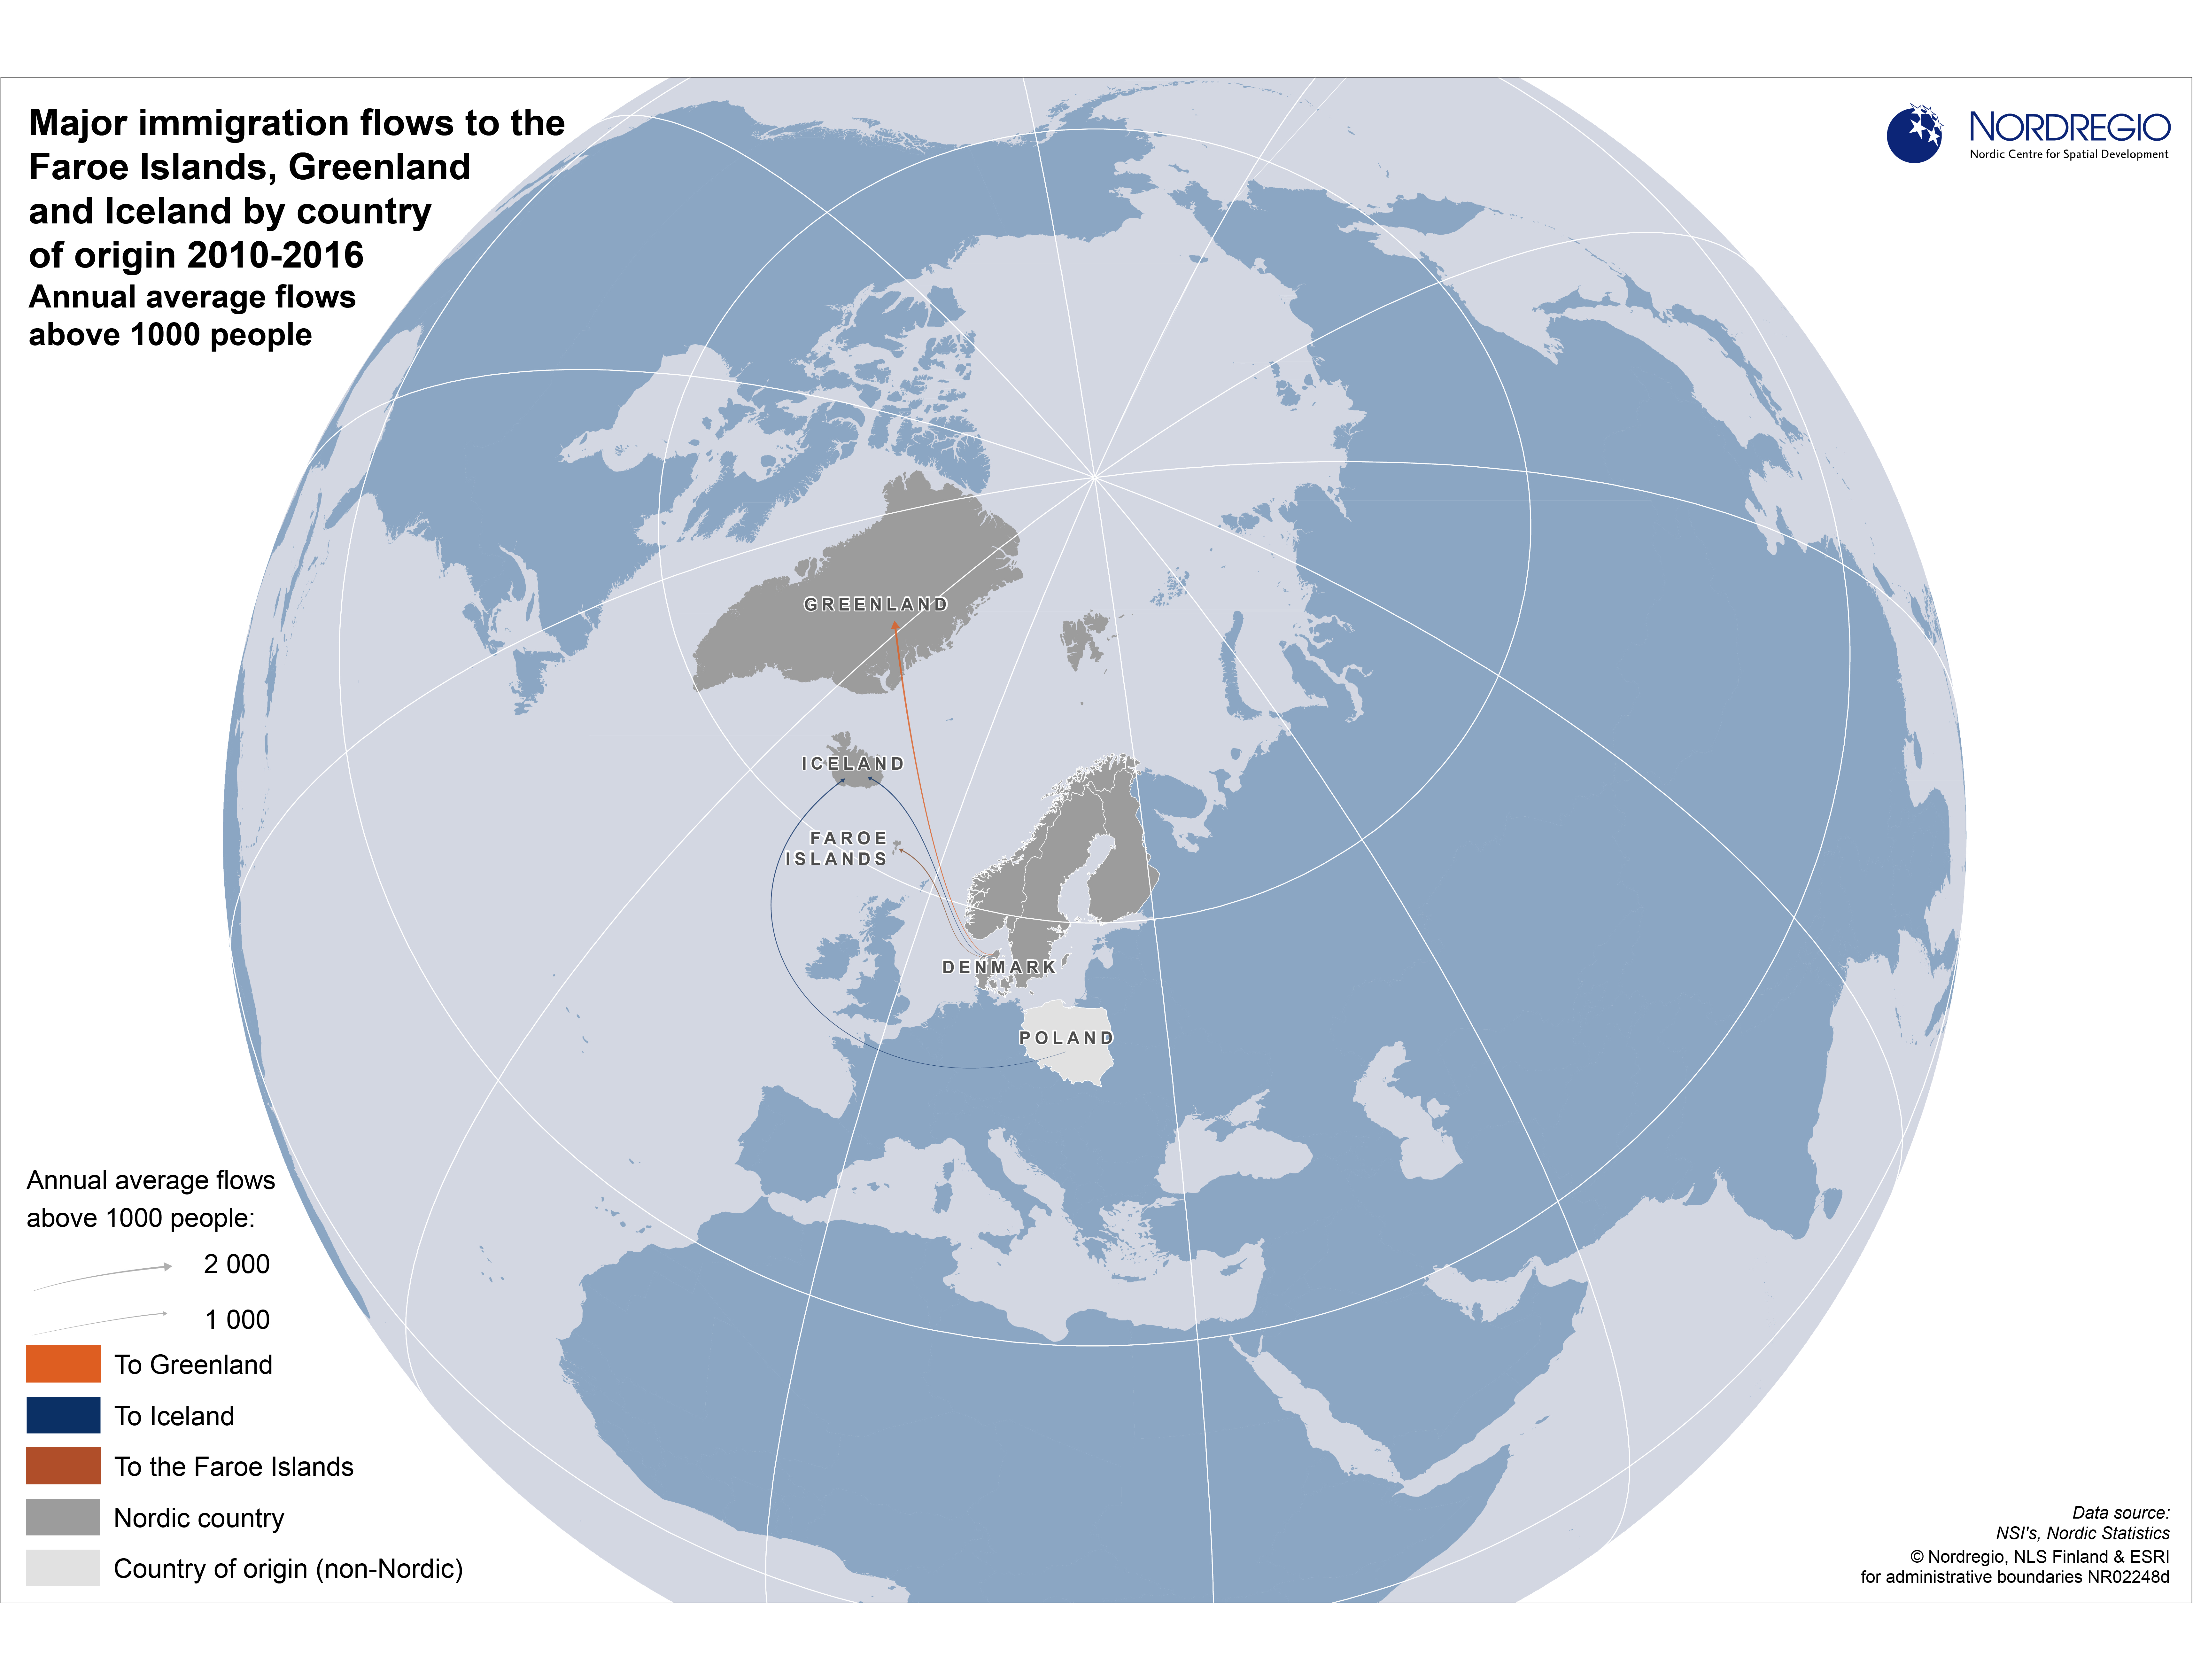 Major immigration flows to the Faroe Islands, Greenland and Iceland ...